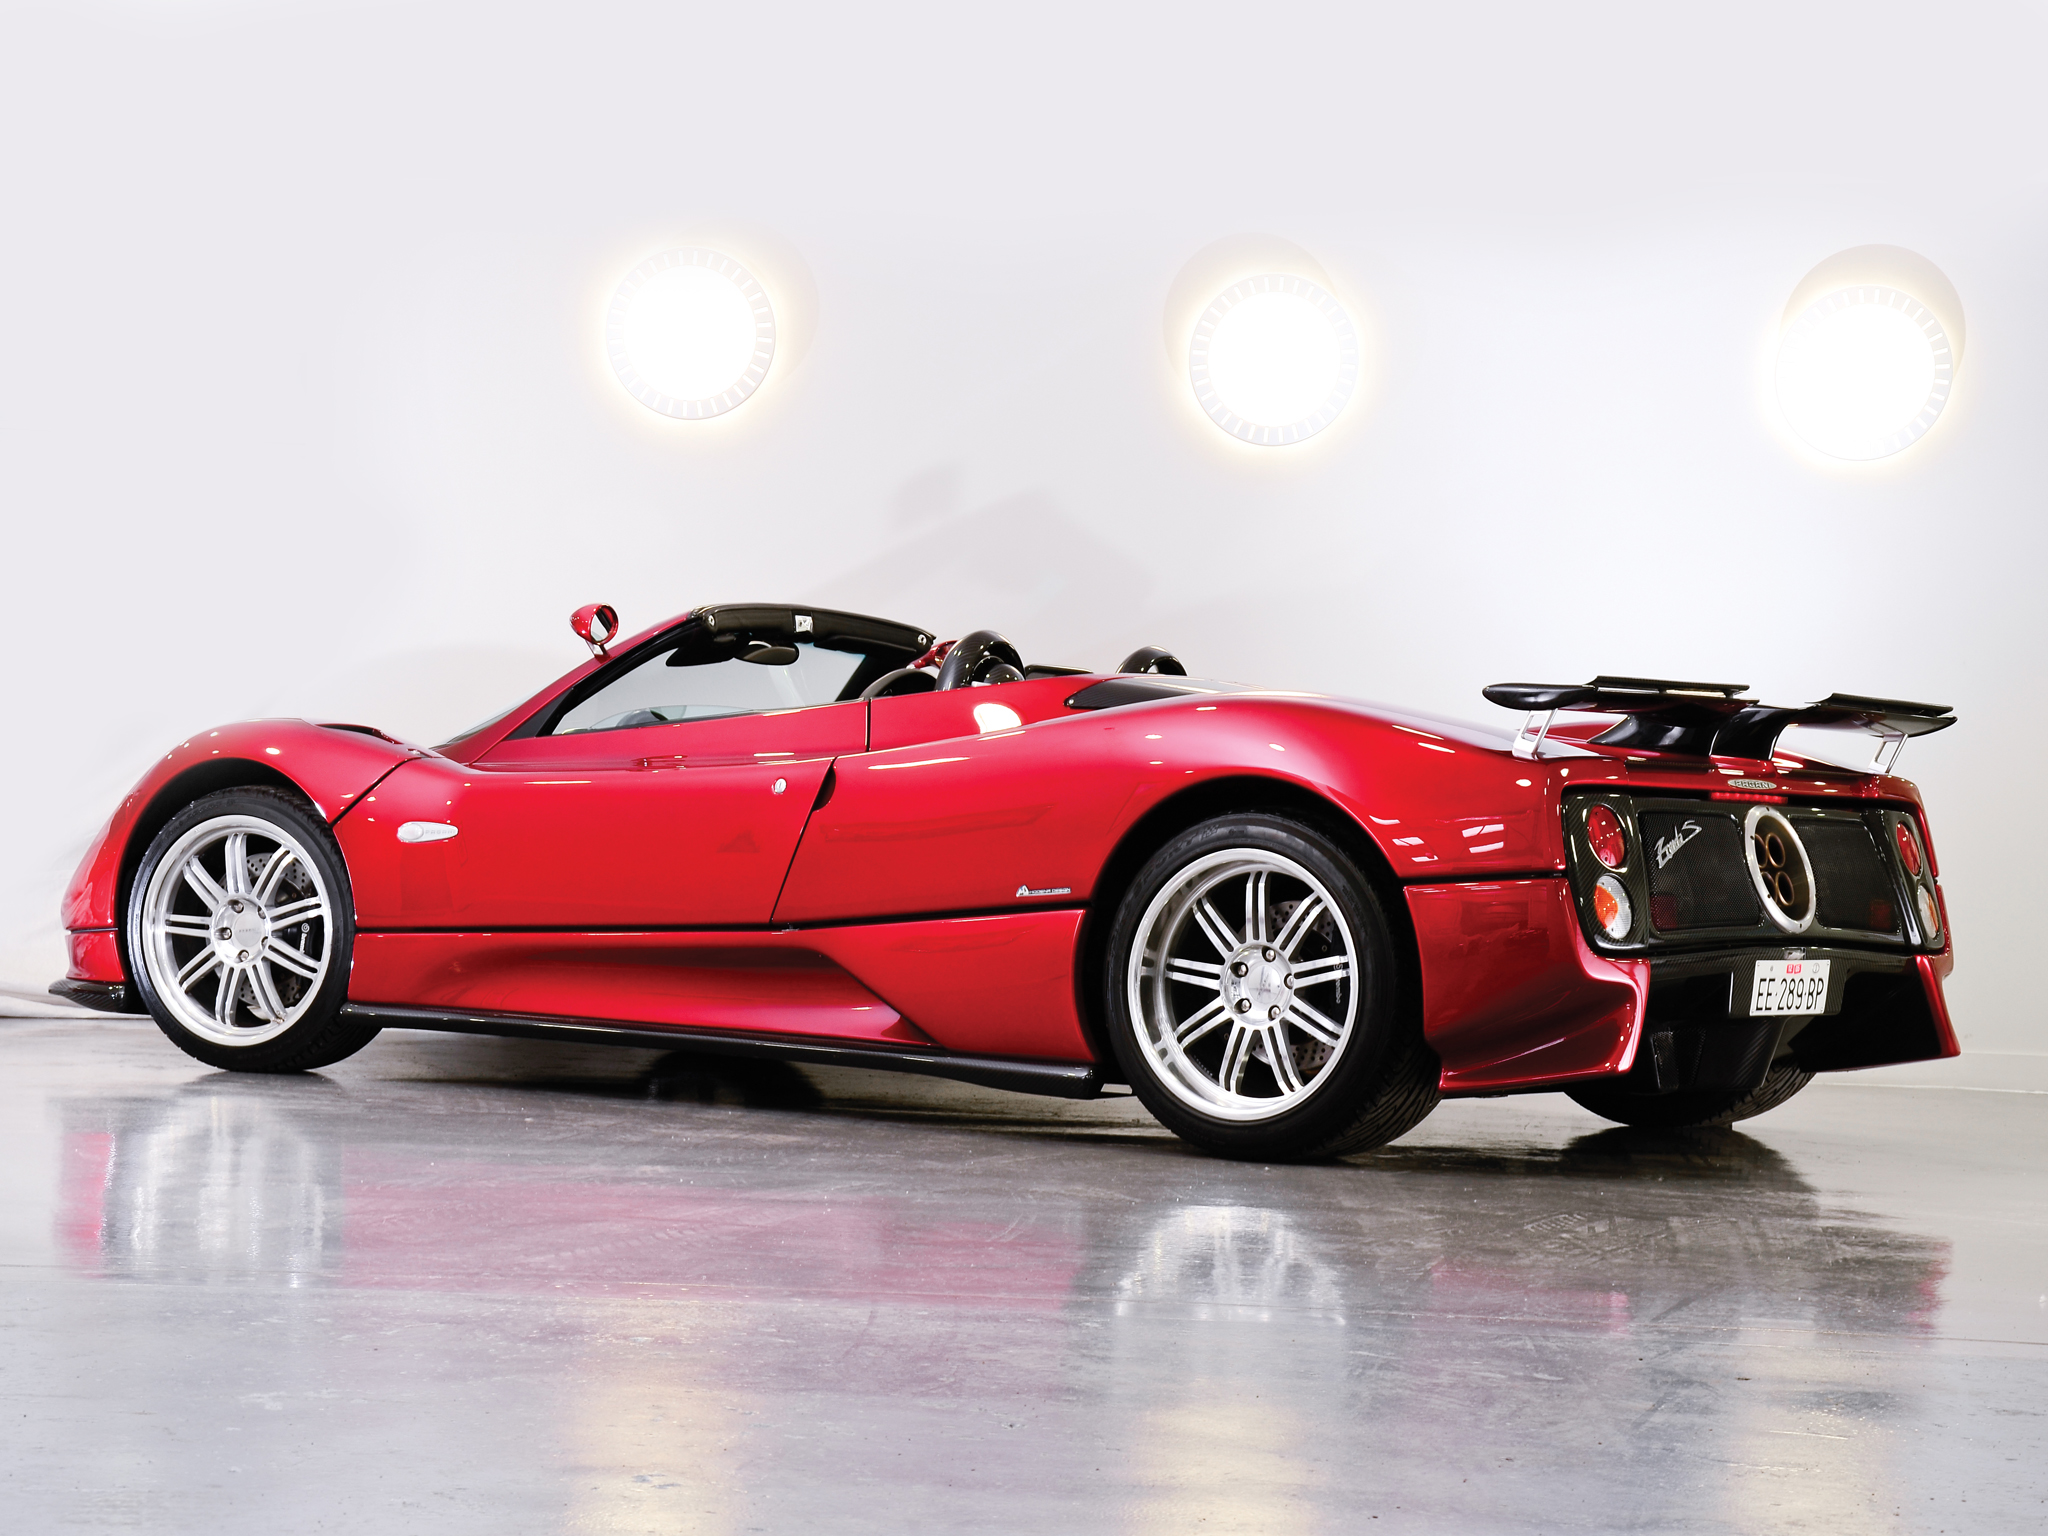 pagani zonda c12 2005 wallpaper